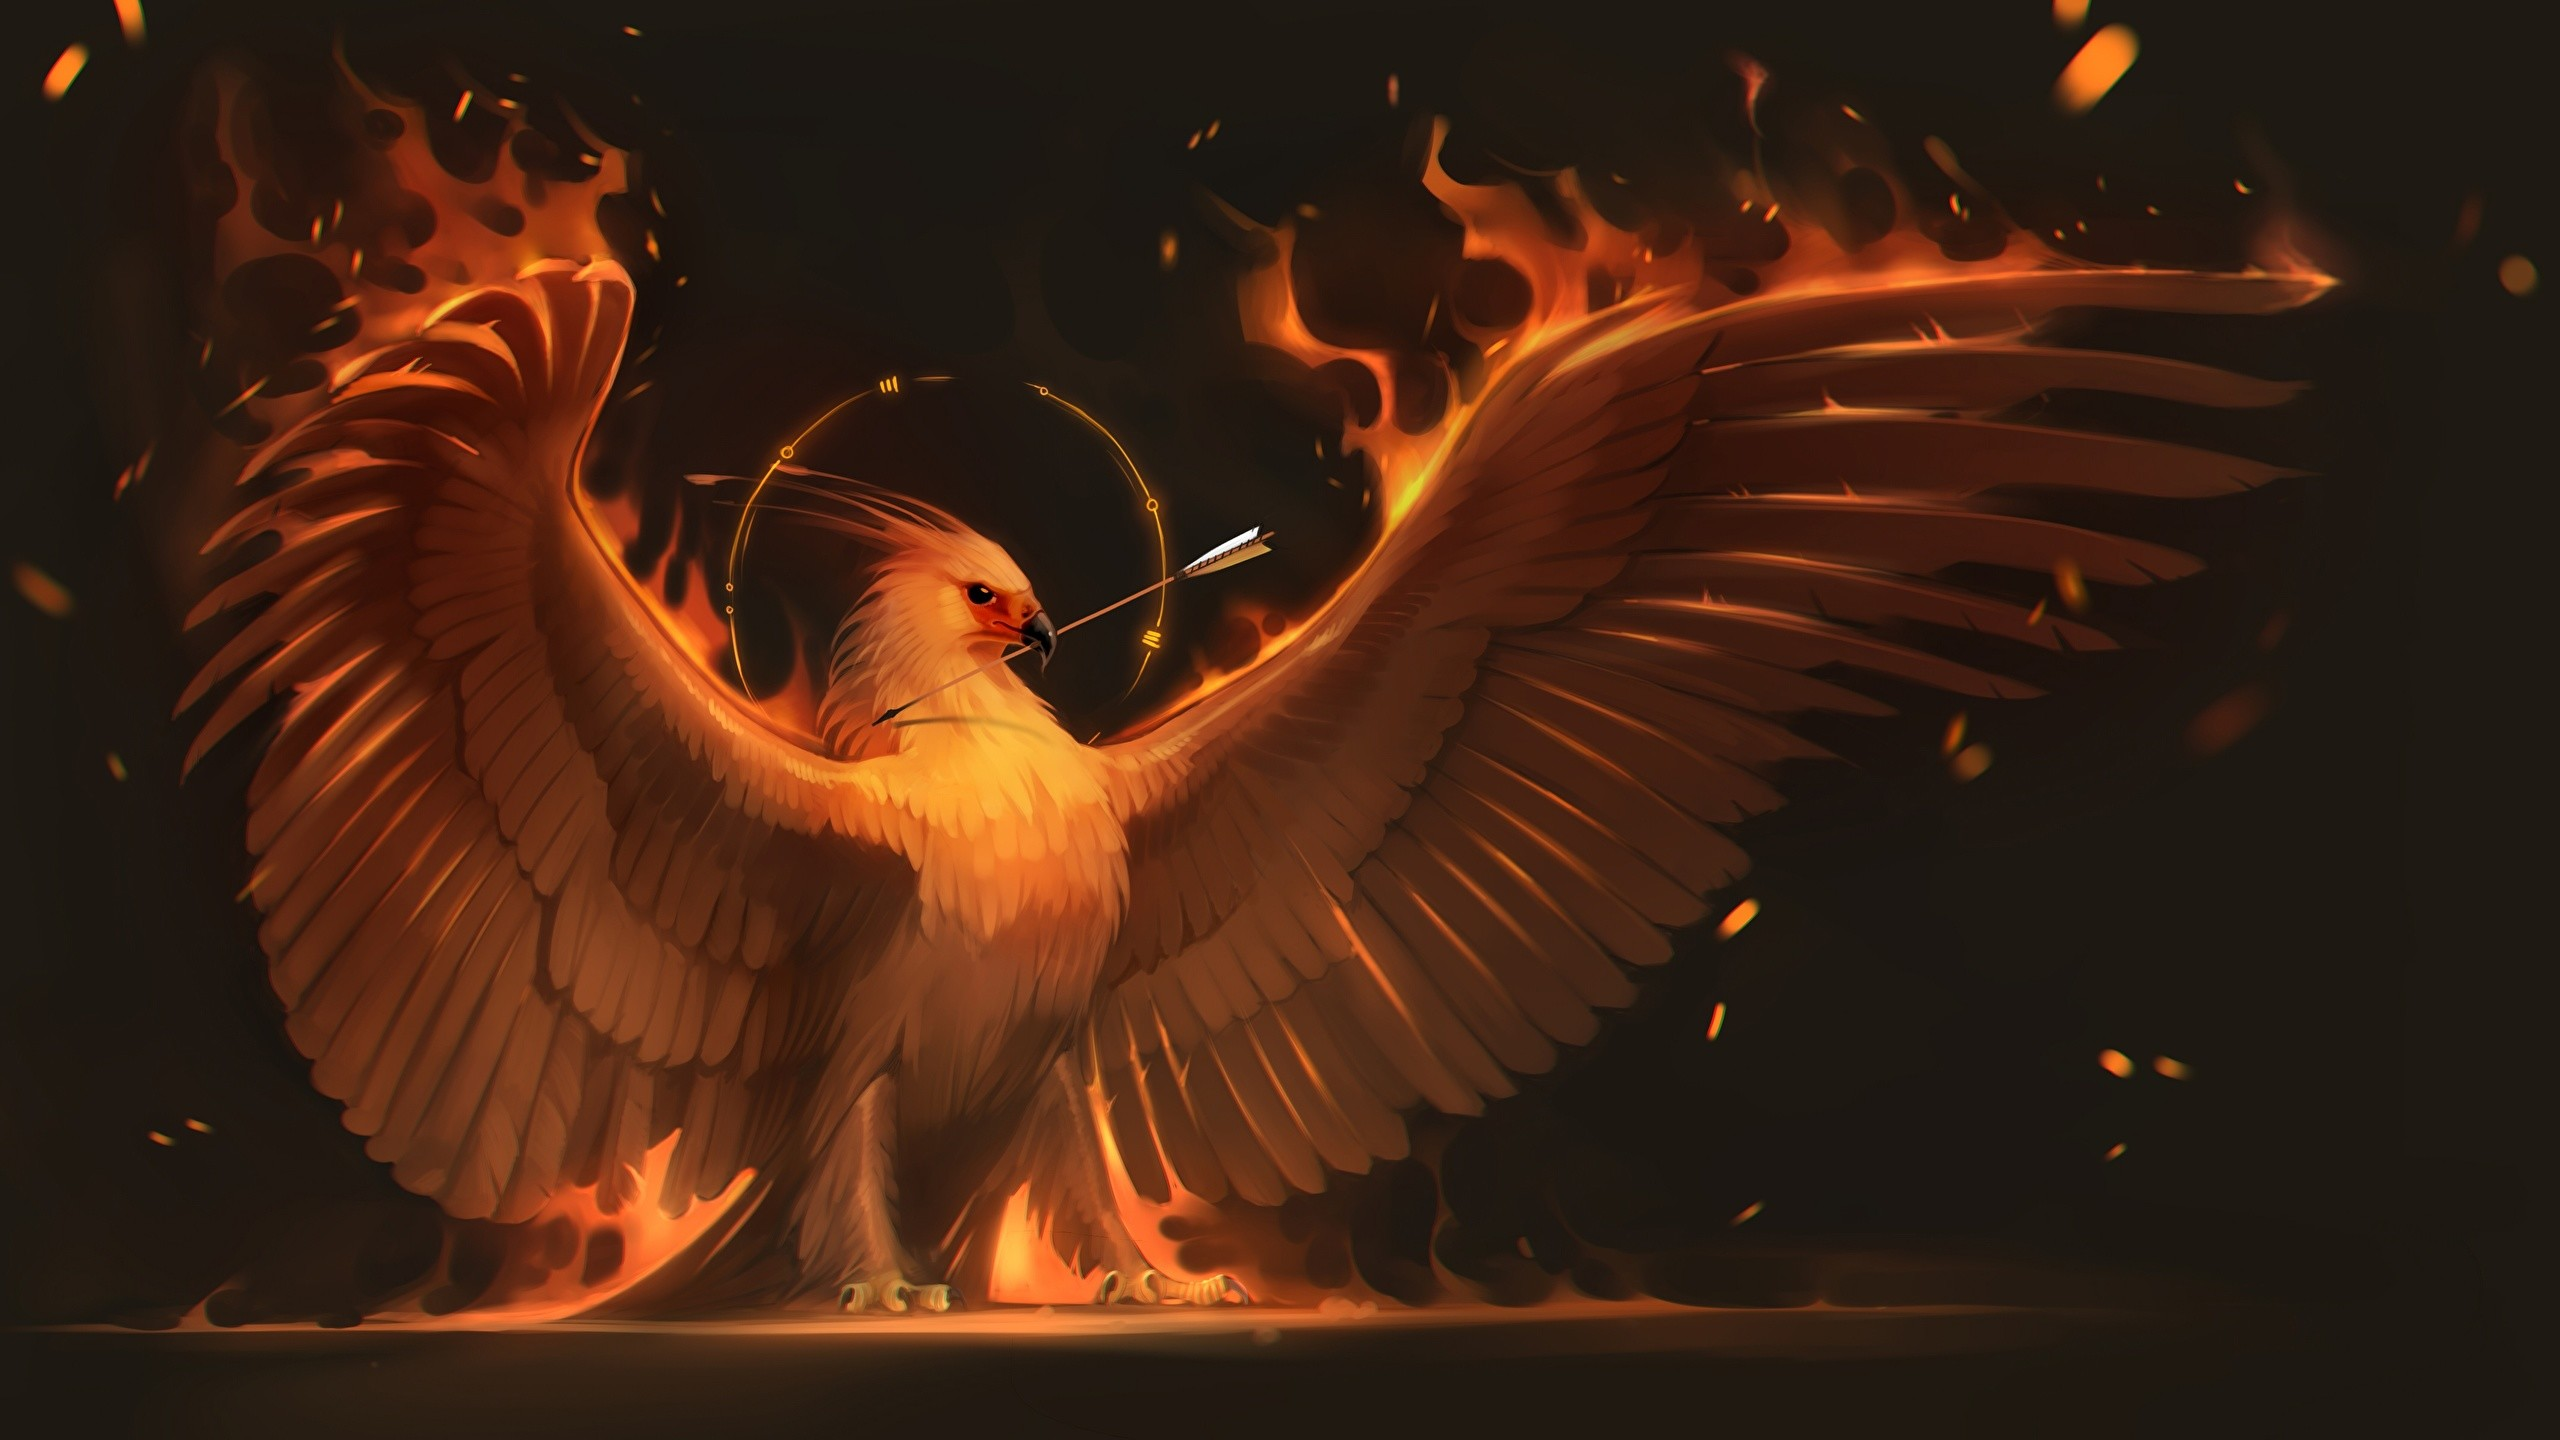 2560x1440 Wallpapers Birds Phoenix mythology Wings Fantasy Fire Magical animals   Flame